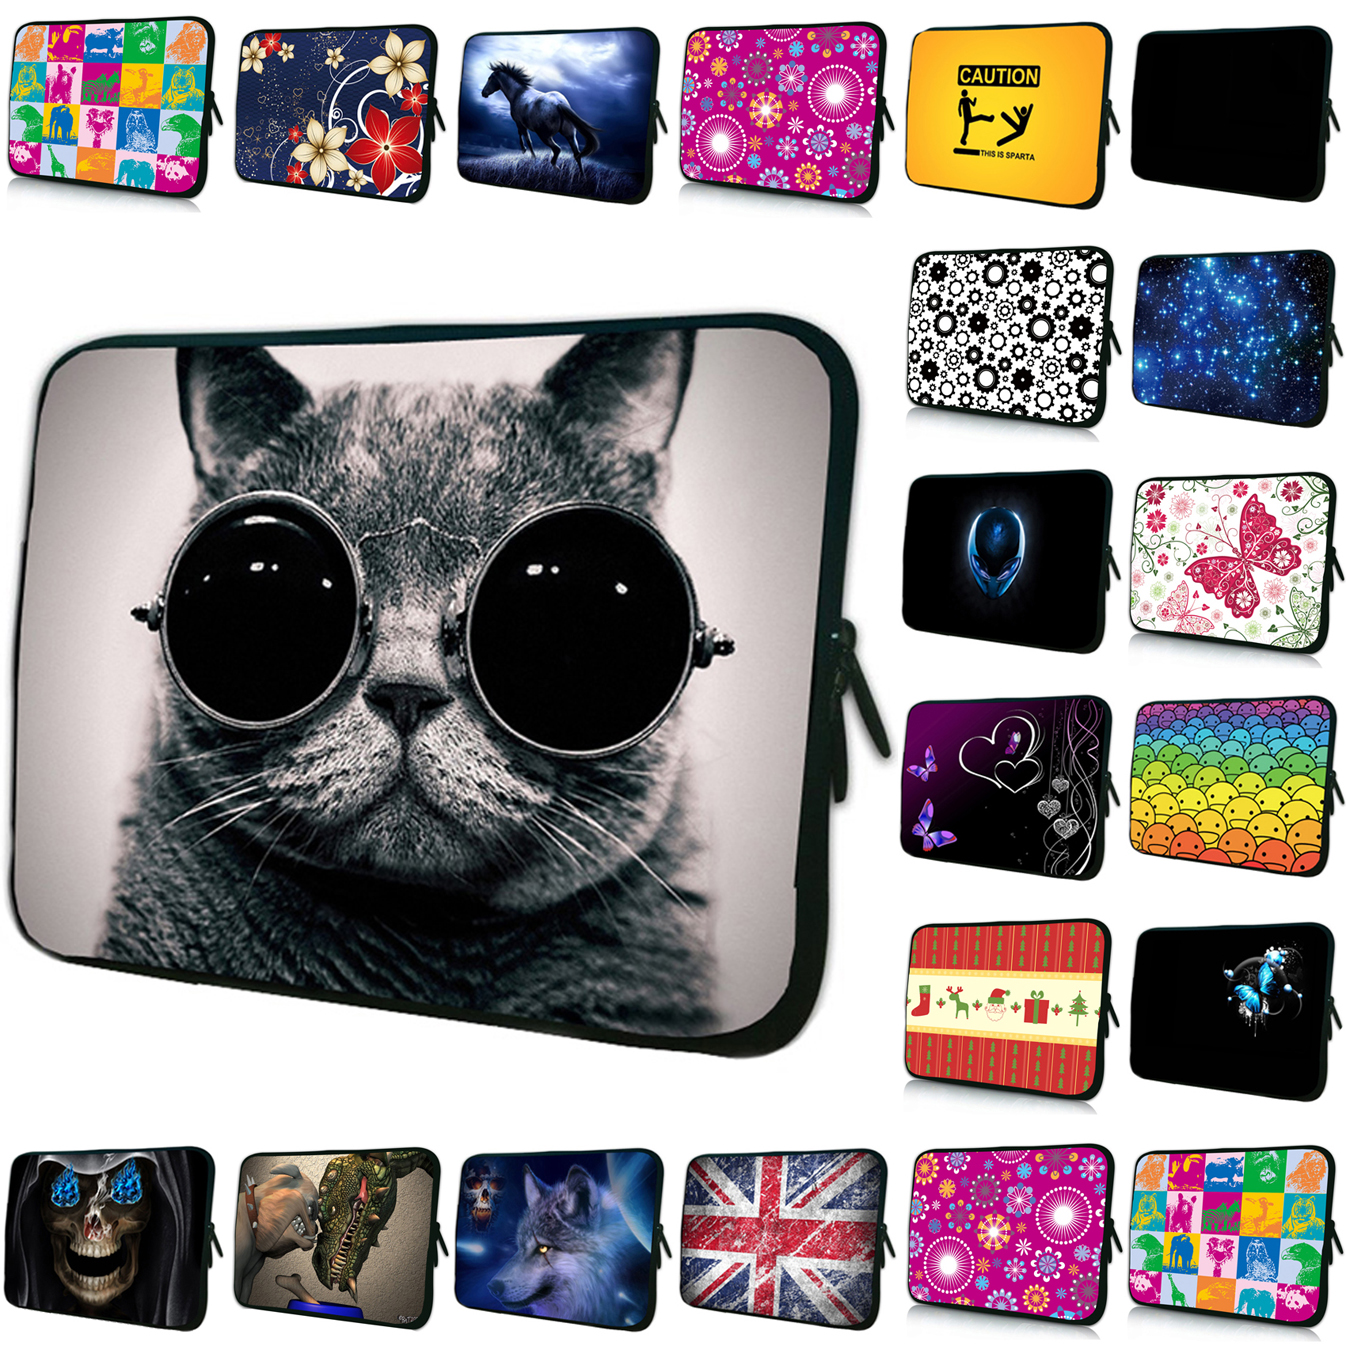 12 15 14 10 Inch Sleeve Notebook Computer Bags For Macbook Ipad Pro Amazon Kindle Fire 17 13 7 Inch Stylish Women Cases Computer